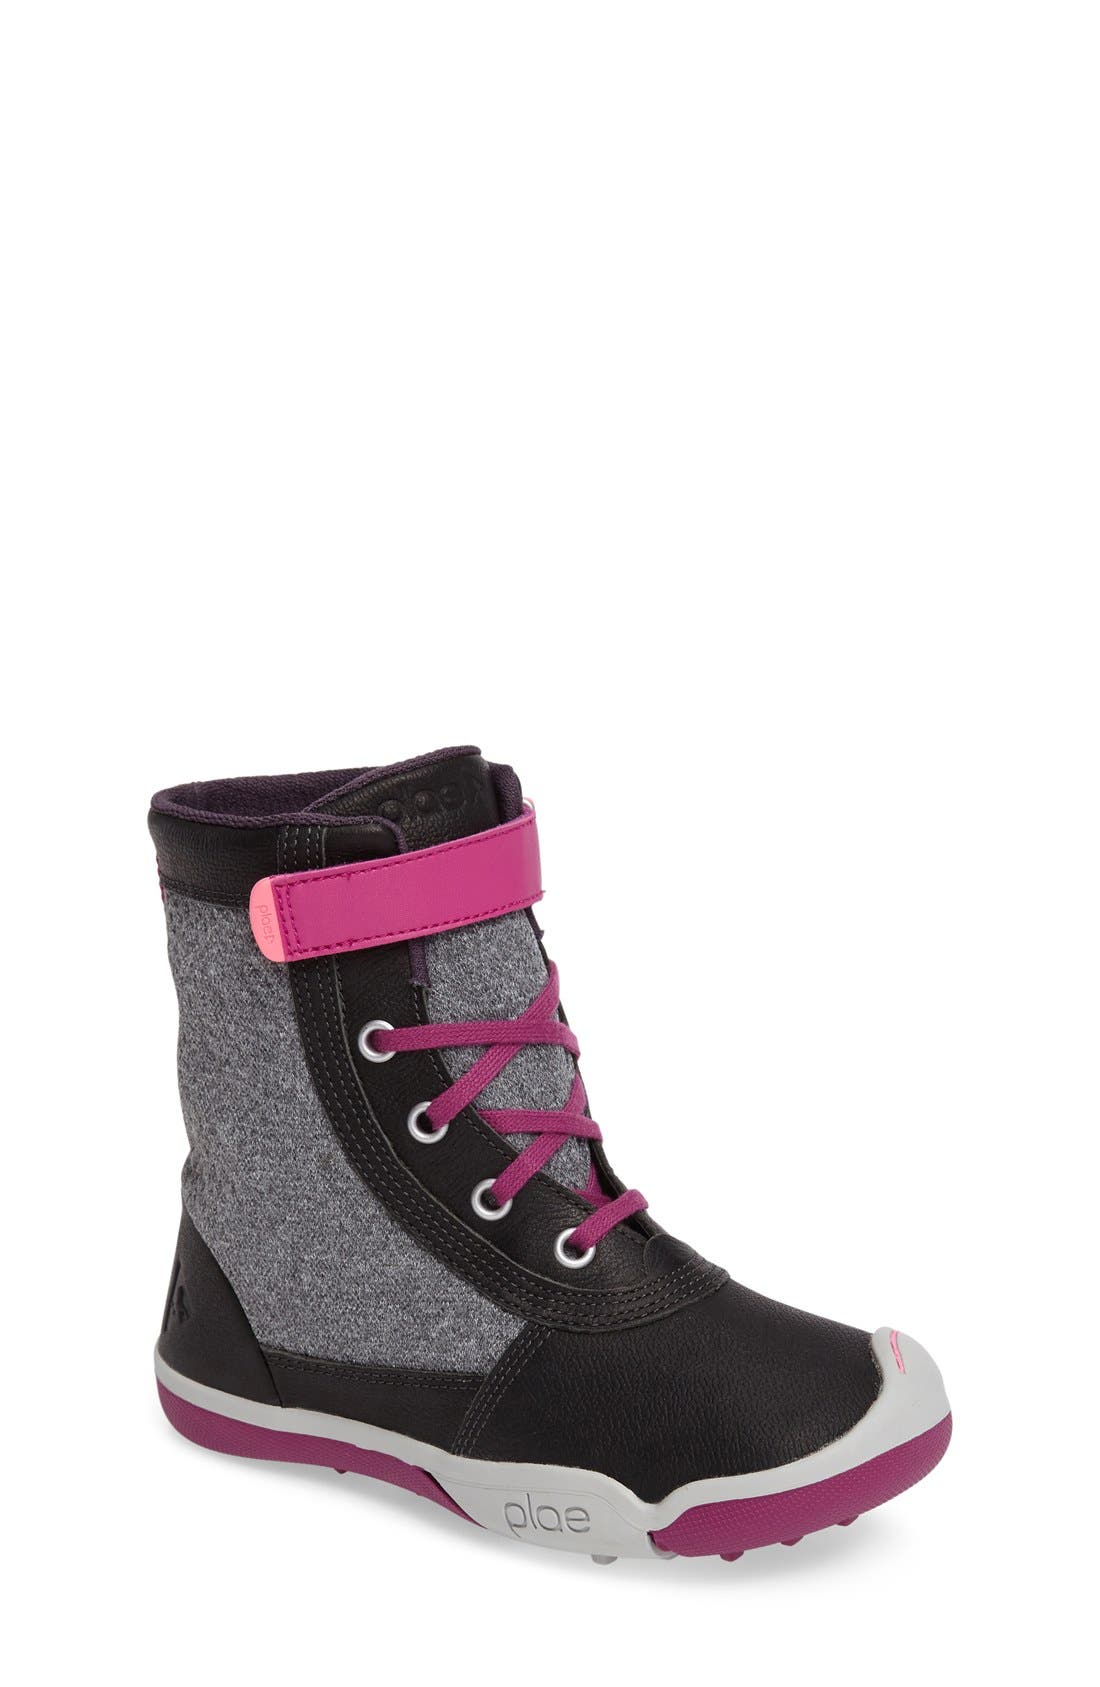 PLAE 'Noel Customiz' Boot